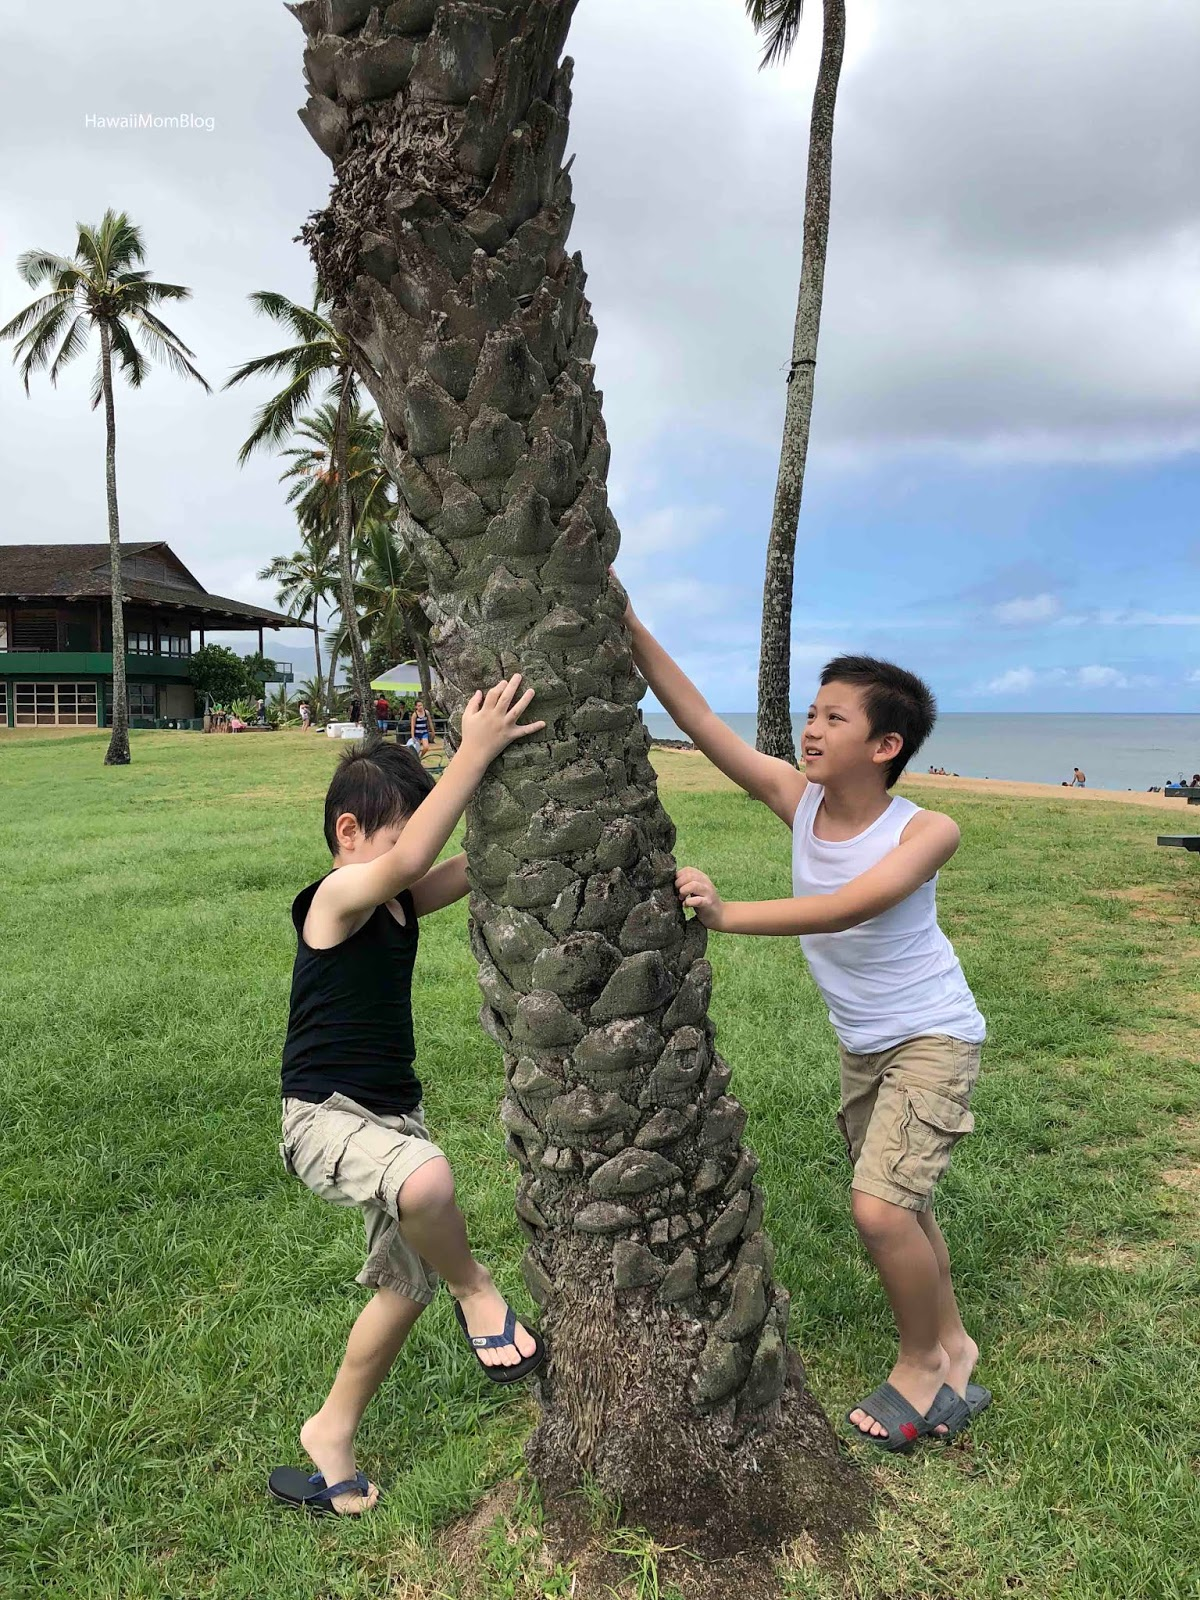 Hawaii Mom Blog: UNIQLO AIRism Review and Giveaway